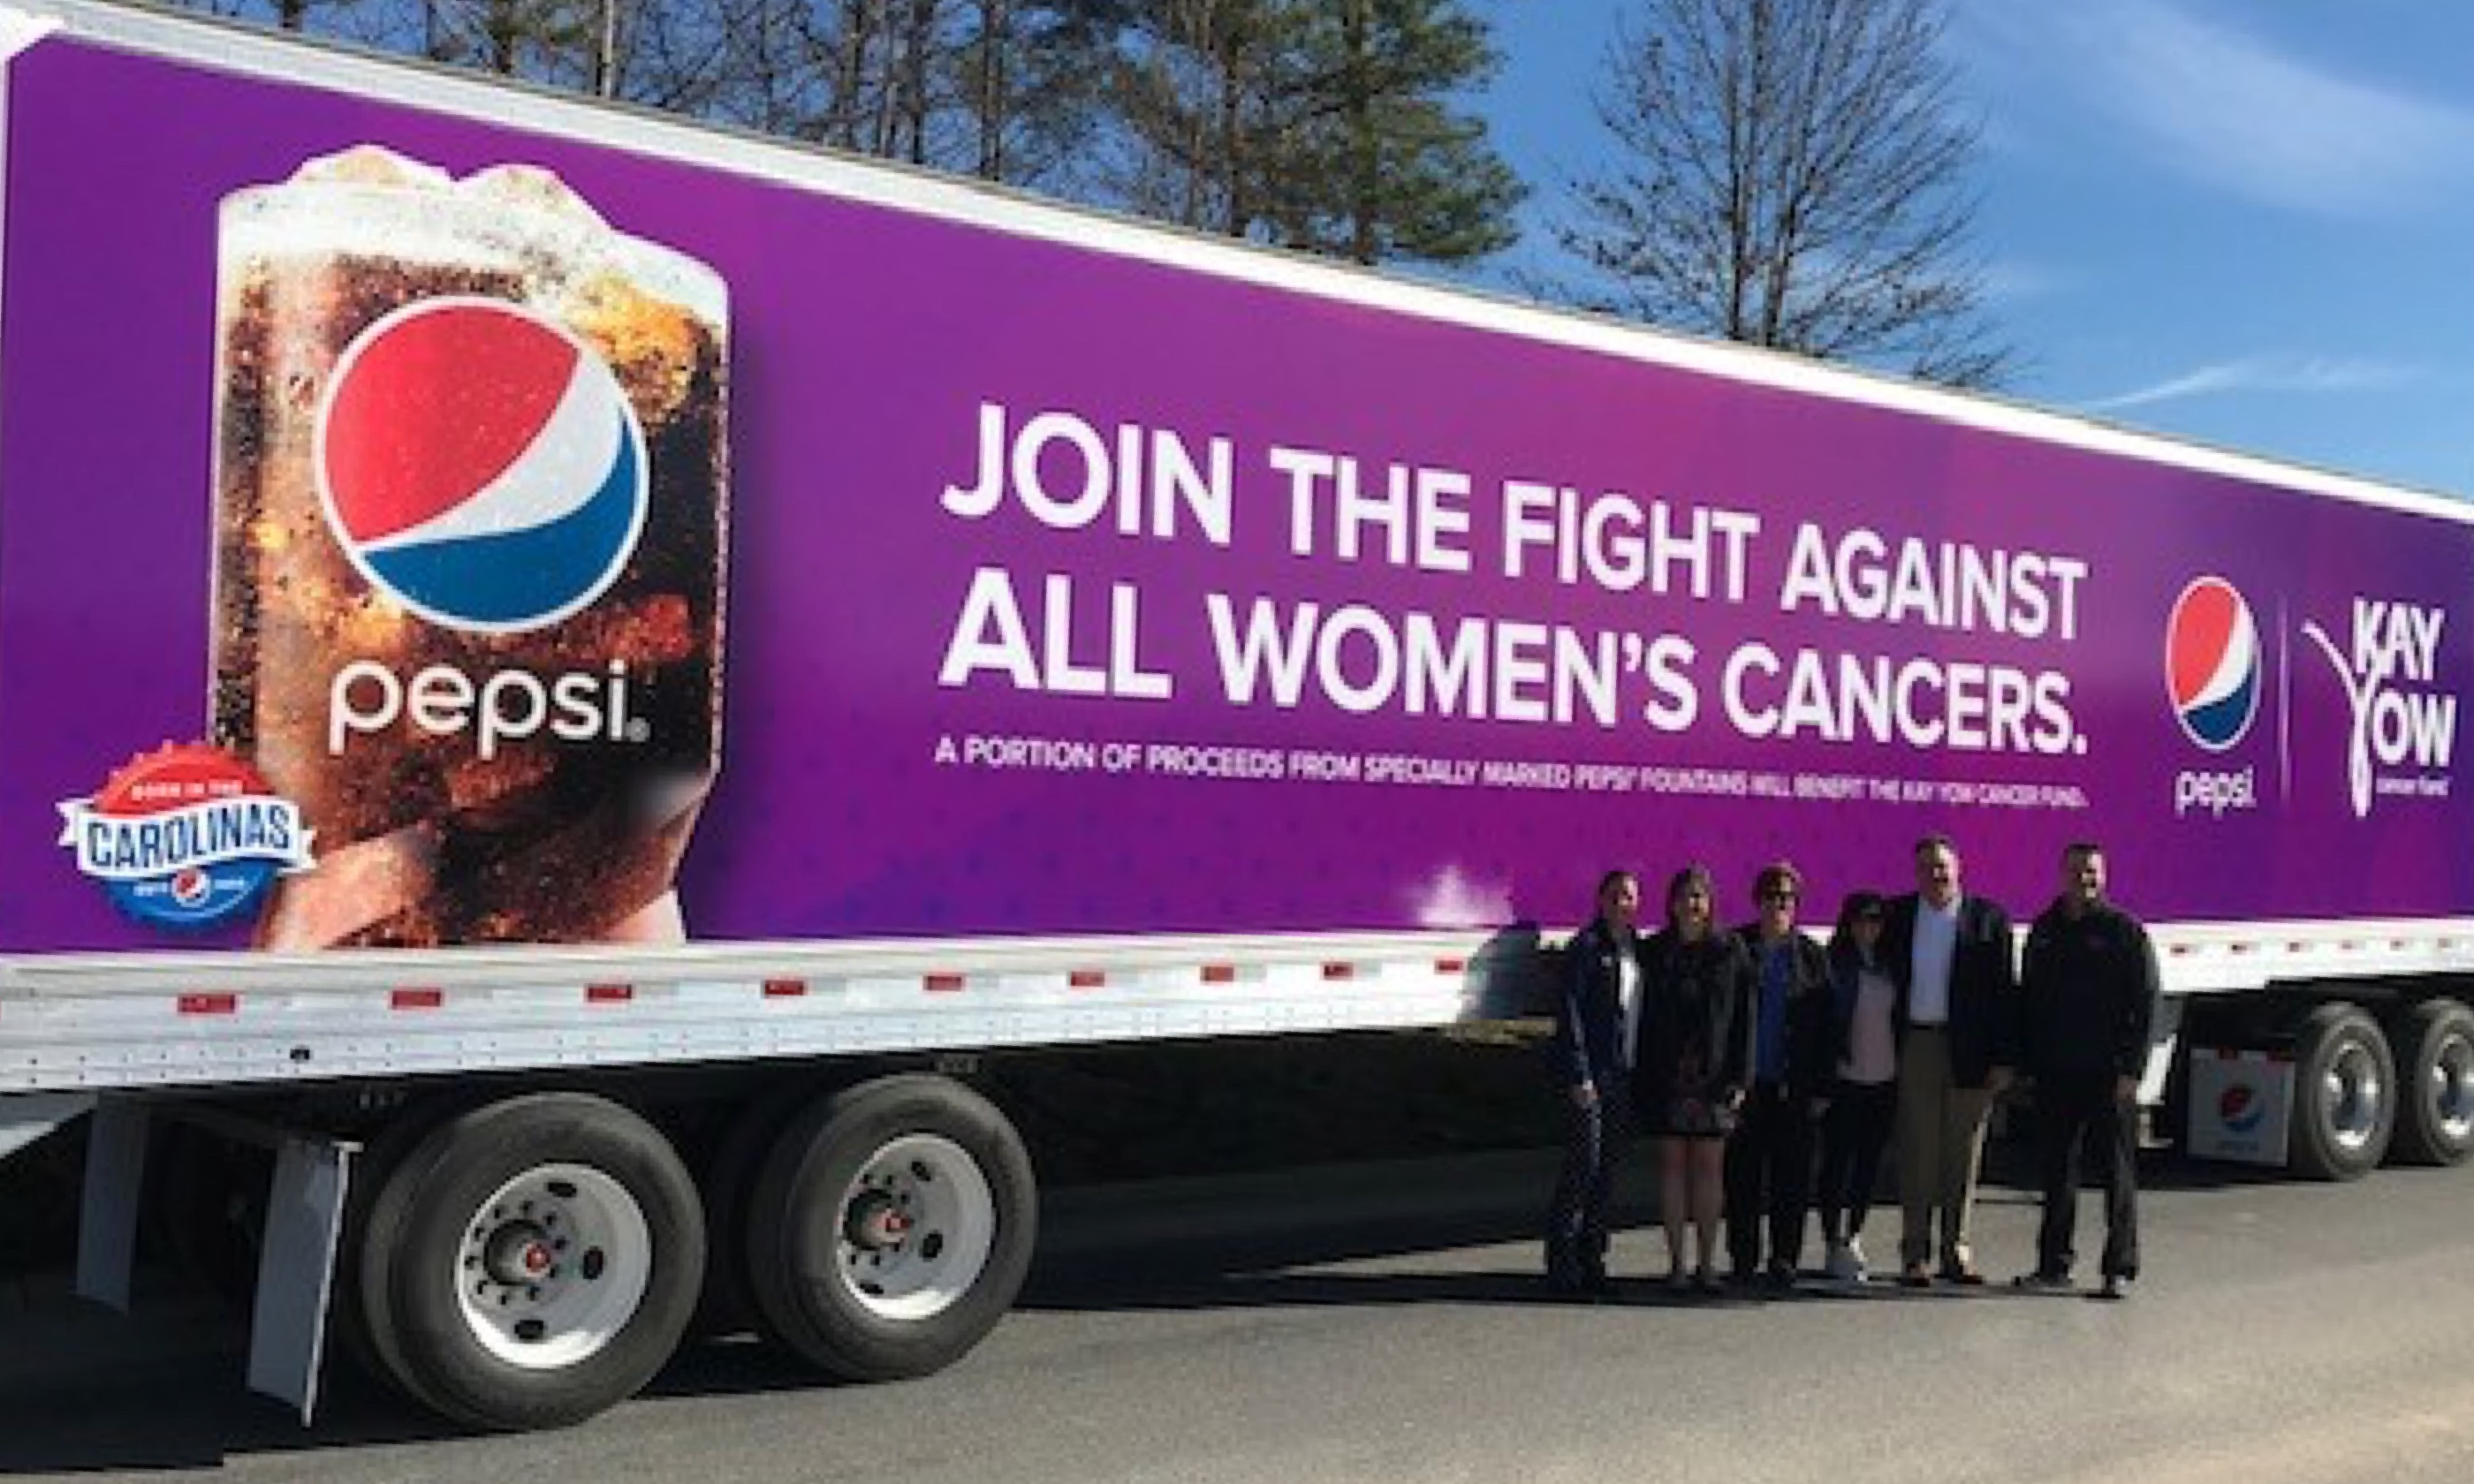 Pepsi Bottling Venture & Kay Yow Branded Deliver Truck Designed to Support Fight Against Women's Cancers